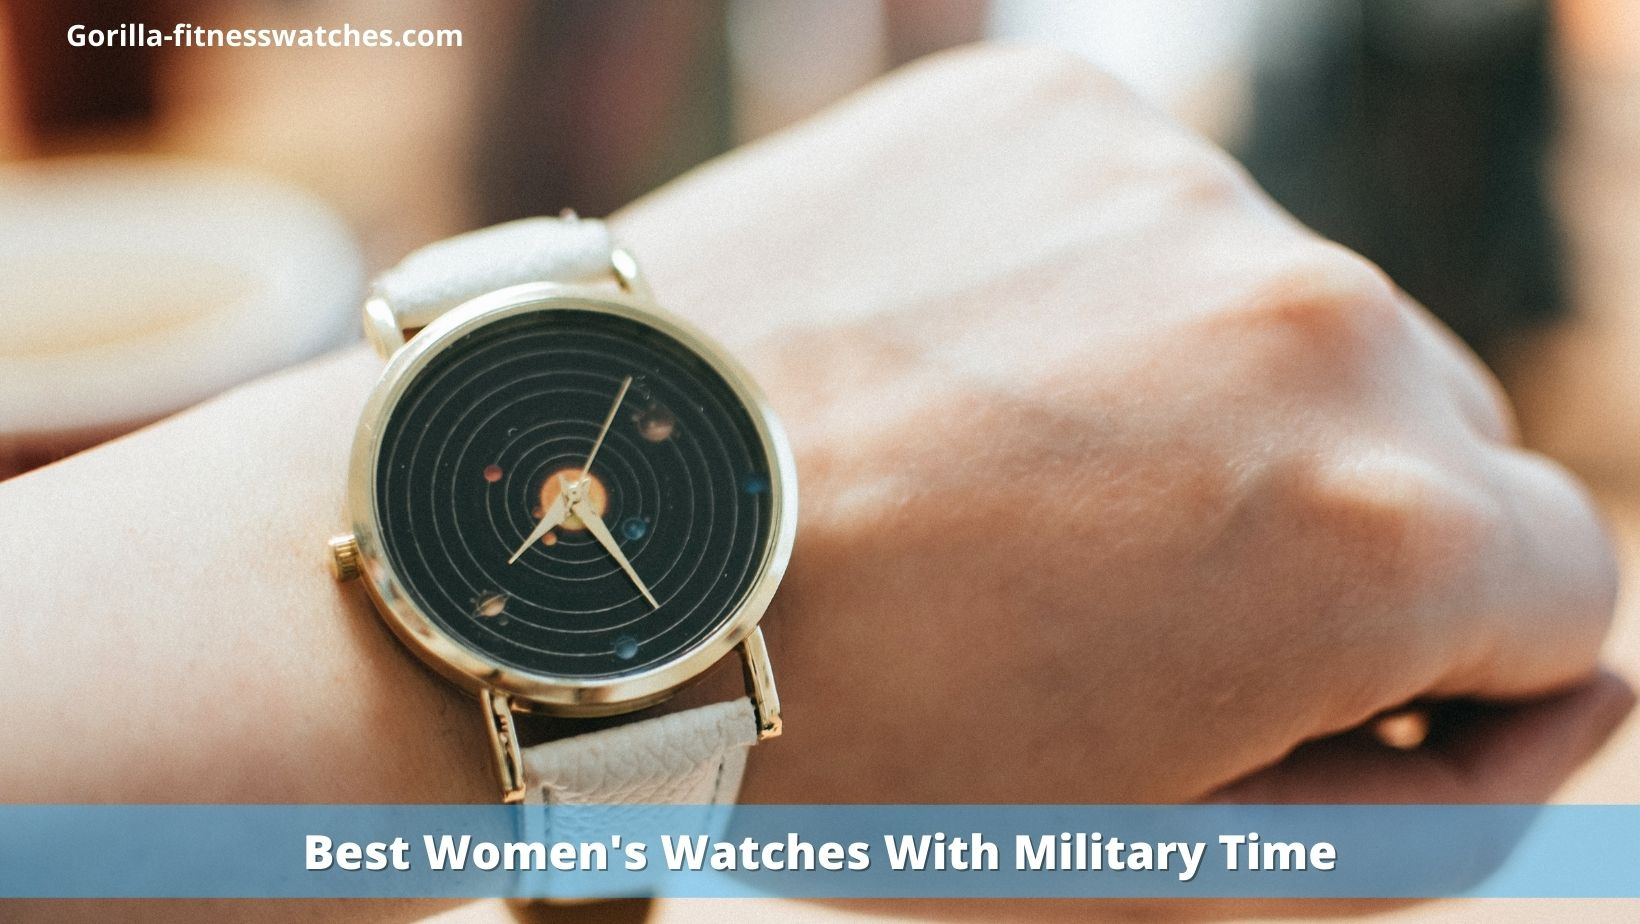 Best Women's Watches With Military Time